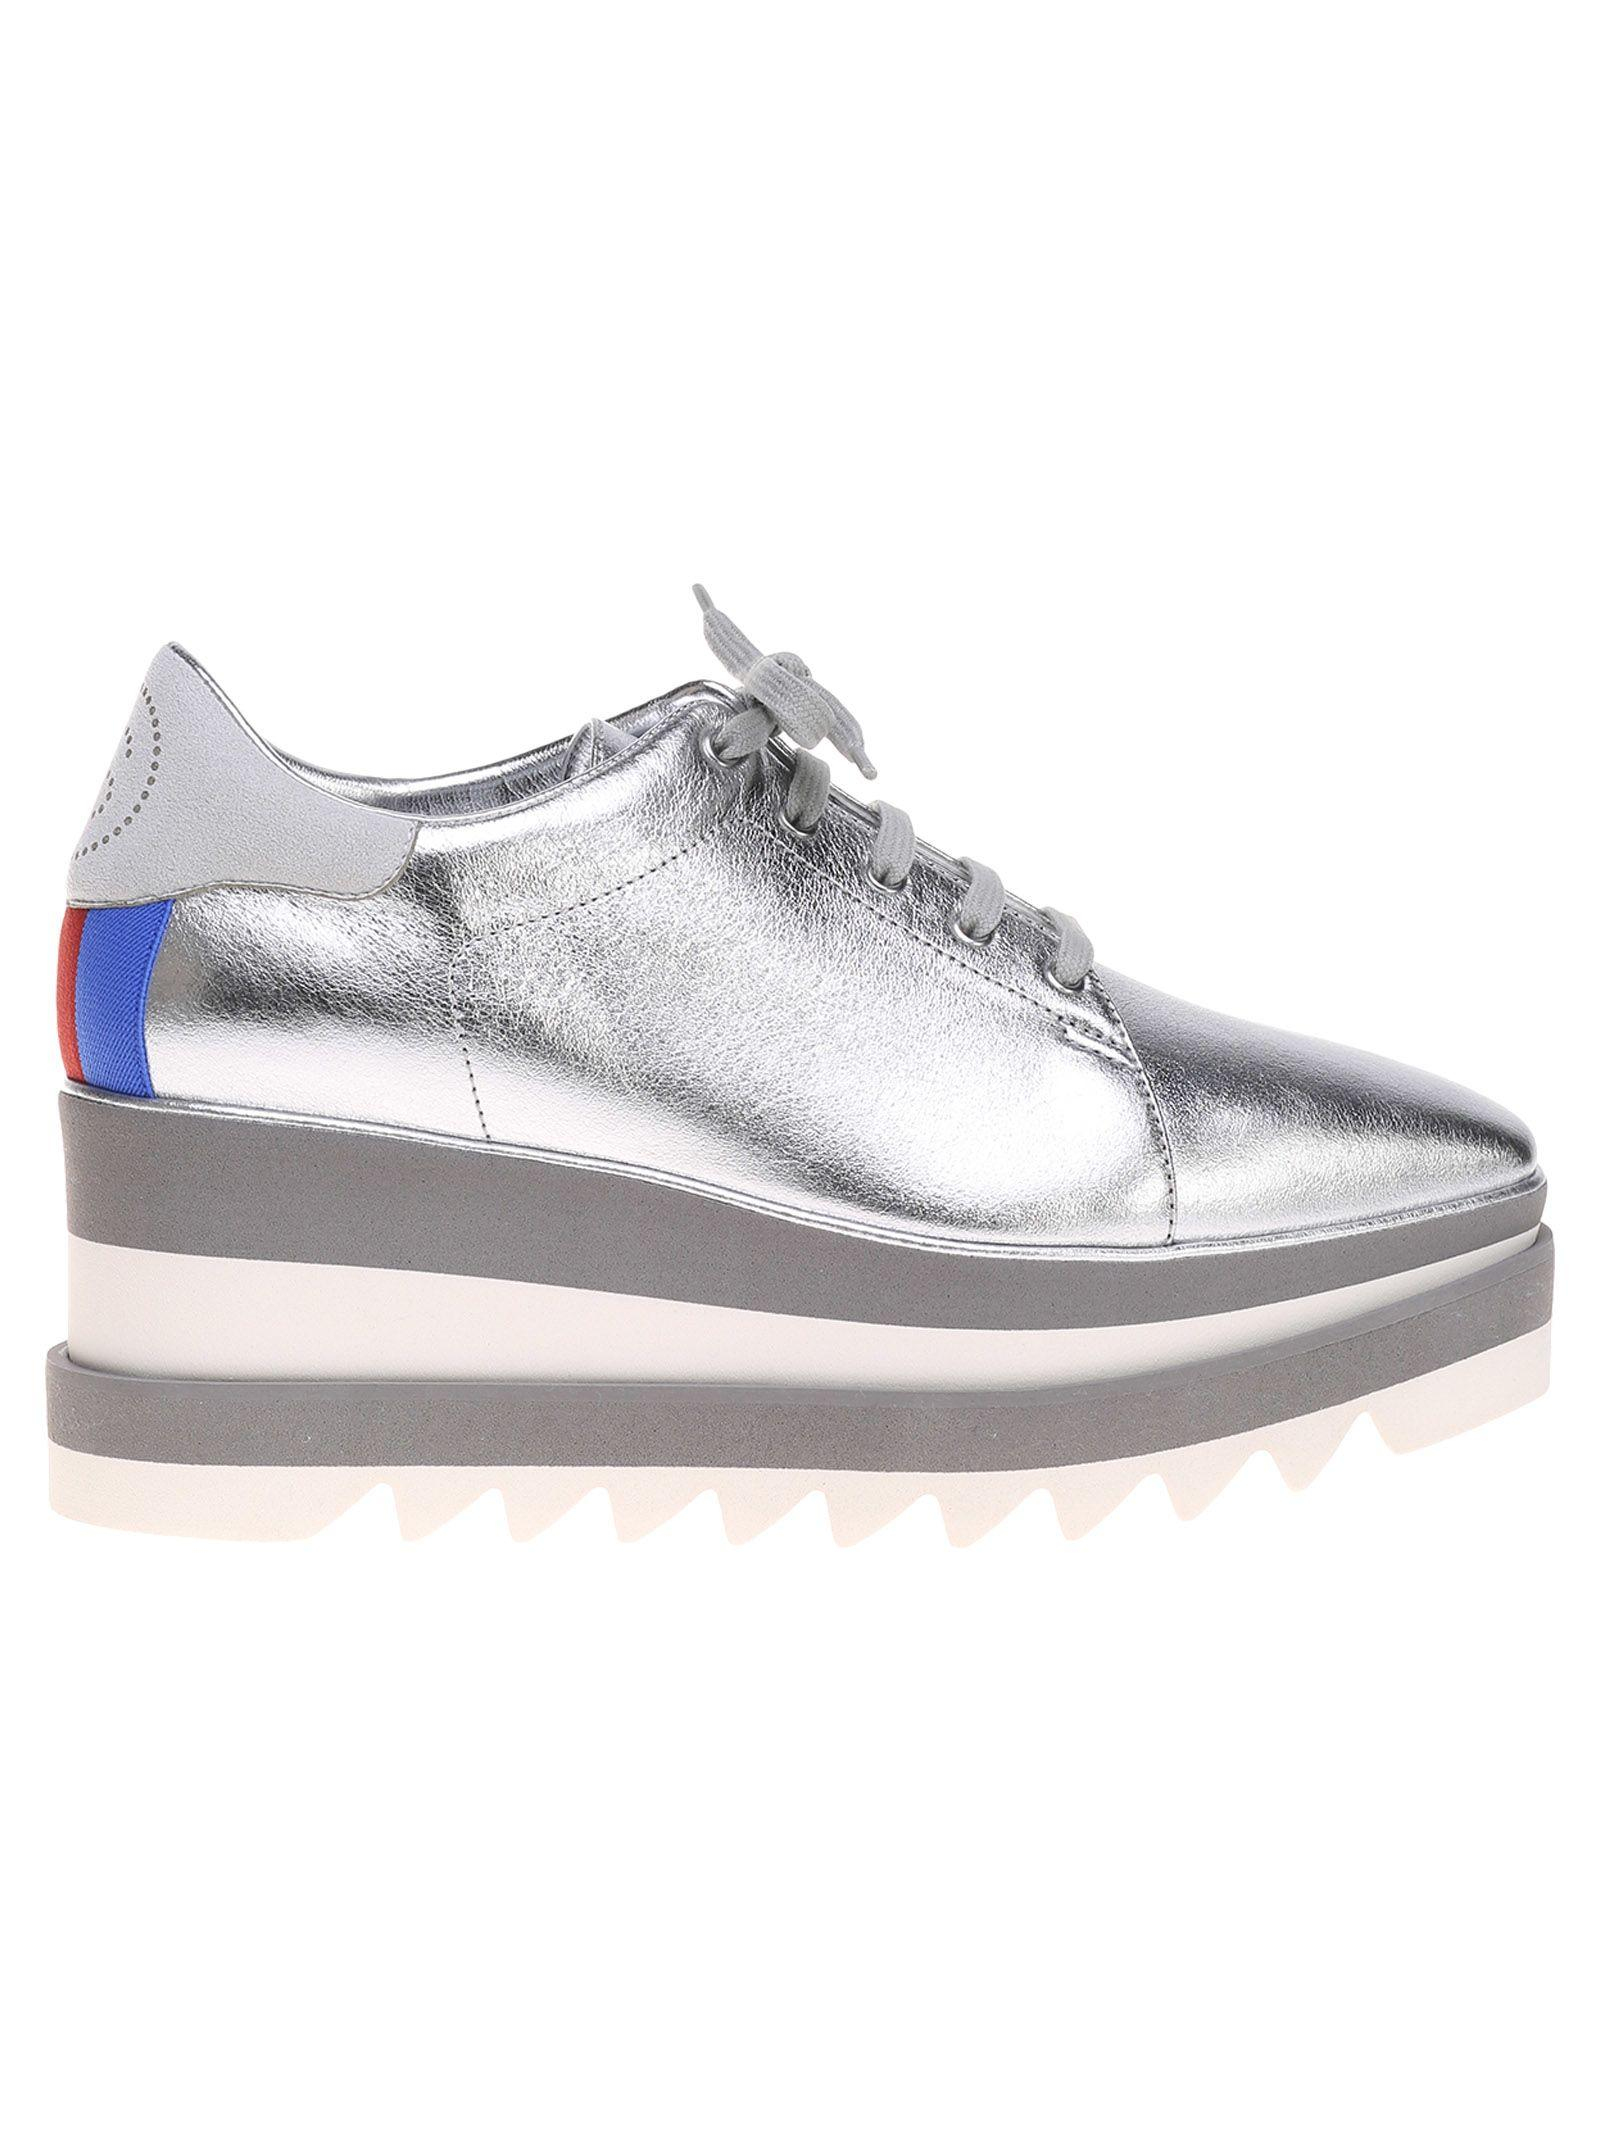 d963dfa101af Stella Mccartney Sneak-Elyse Faux-Leather Platform Trainers In ...